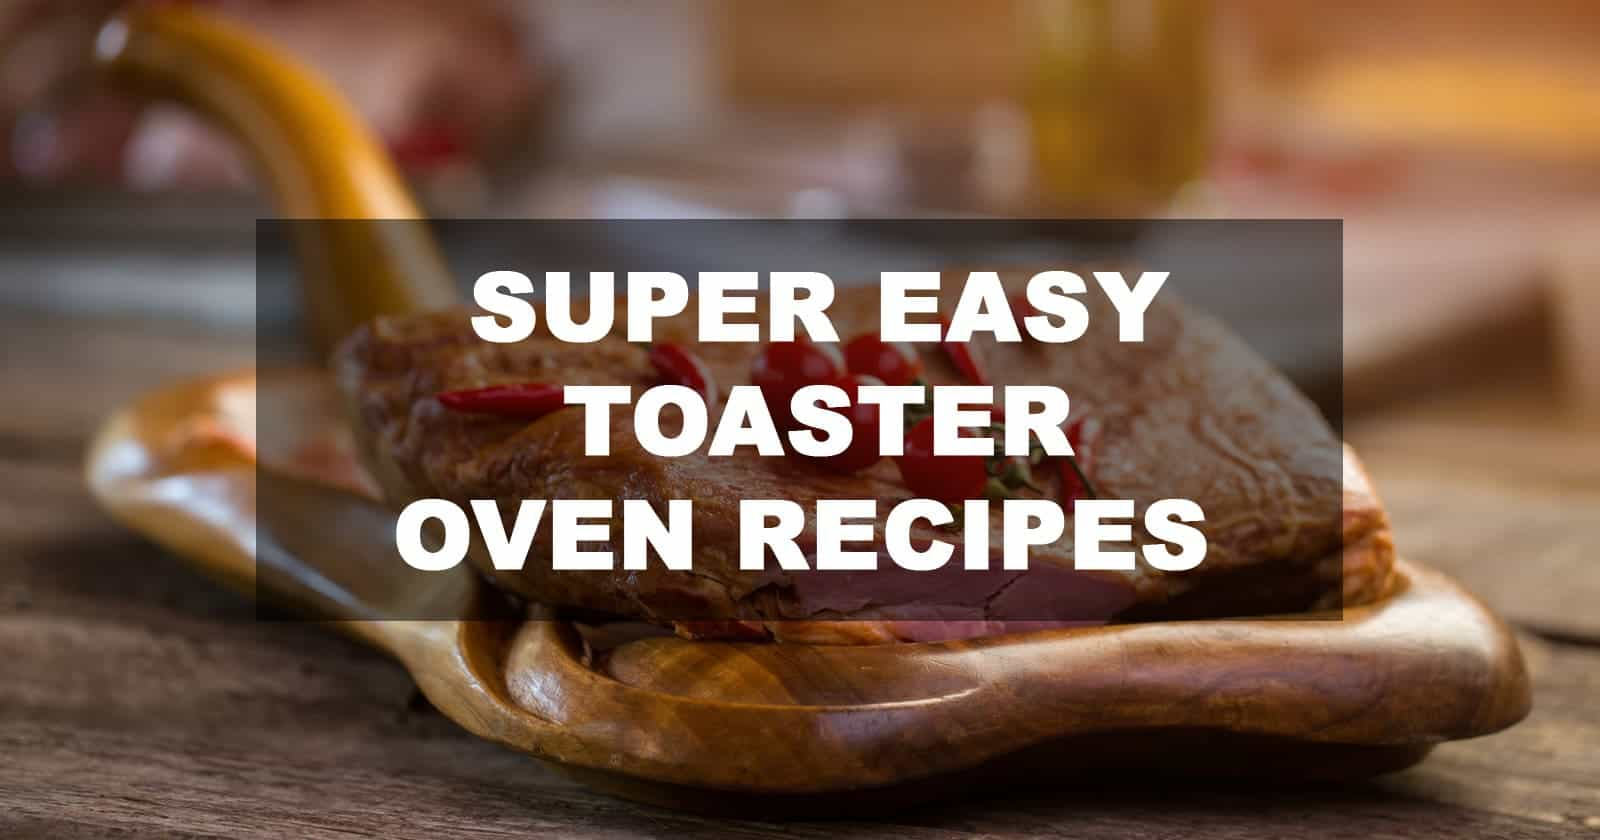 Super easy toaster oven recipes